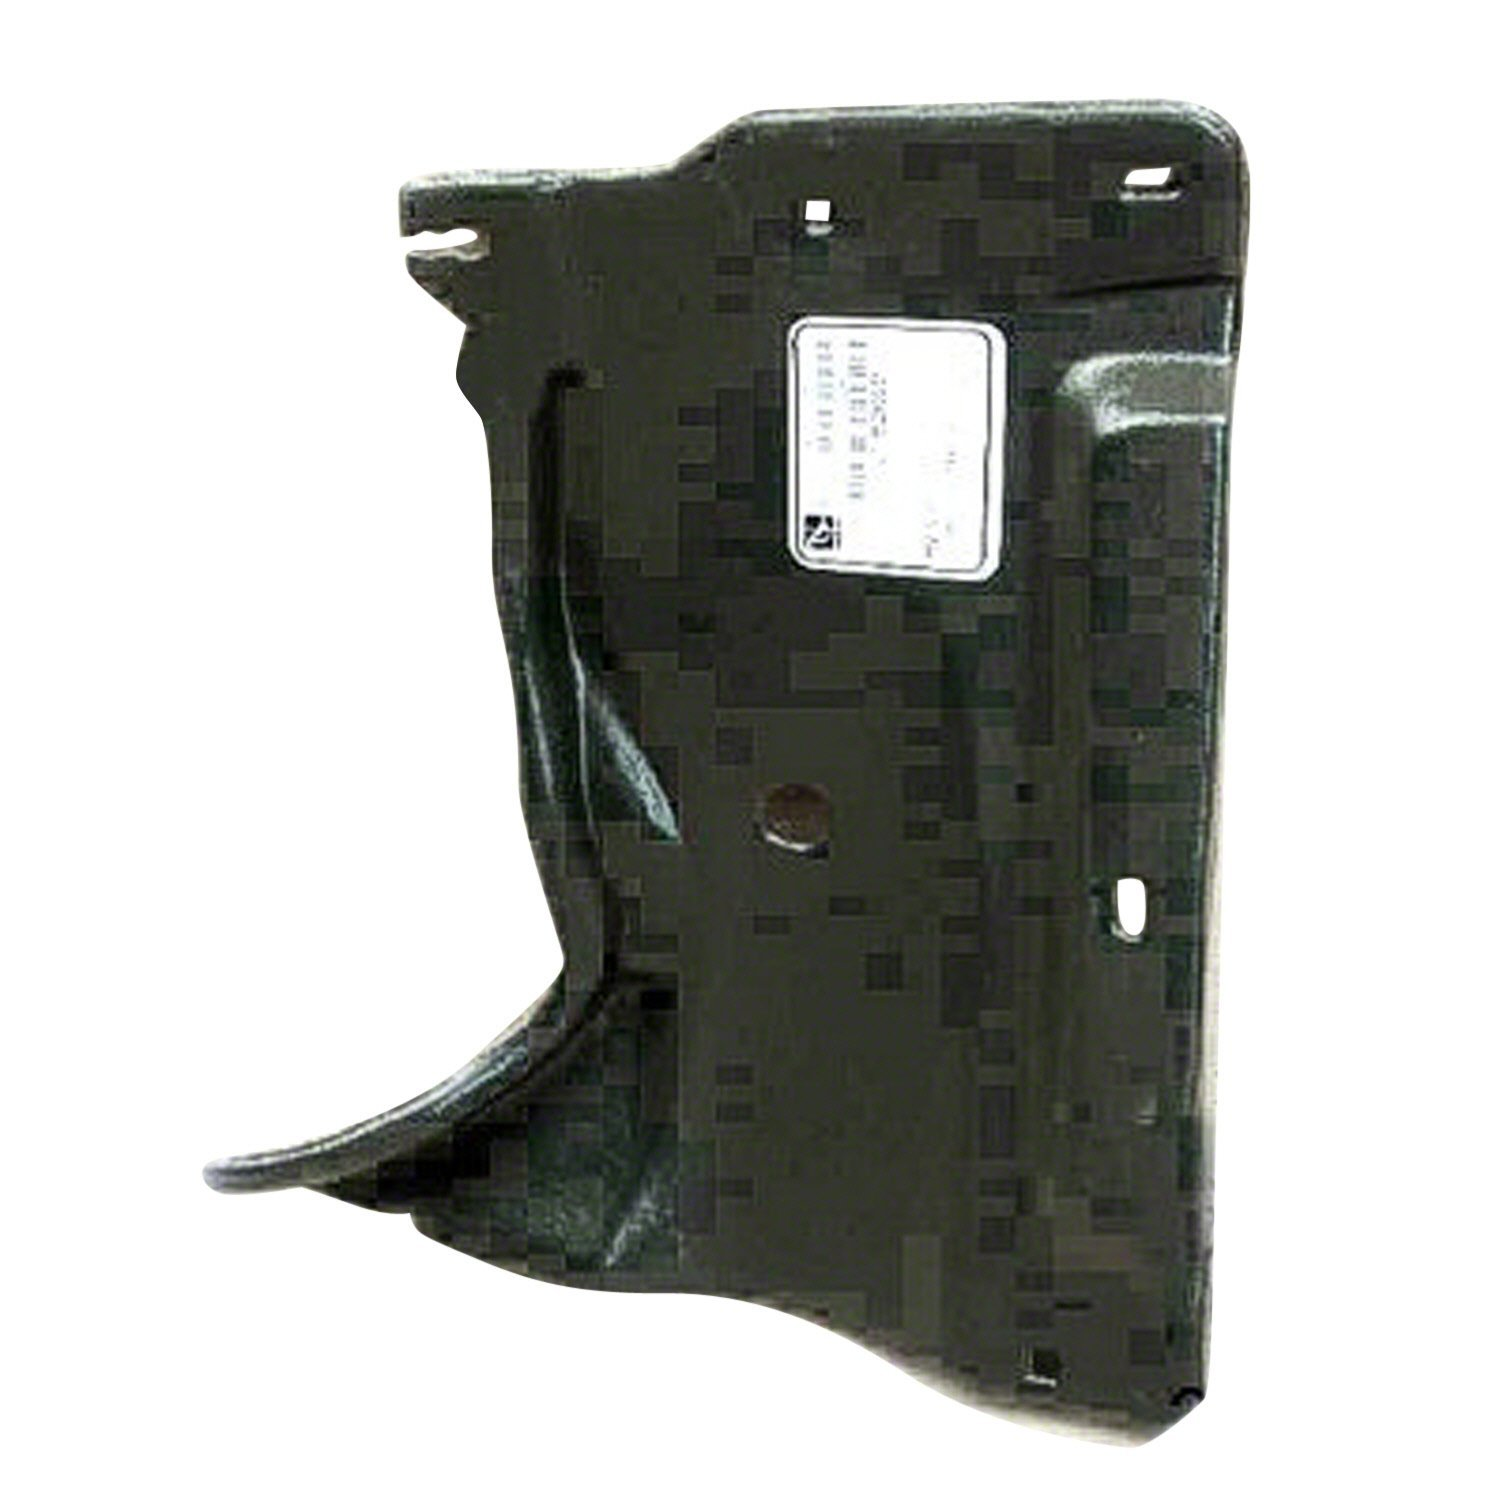 Crash Parts Plus MA1228114 Front Engine Cover for Mazda 3, 5